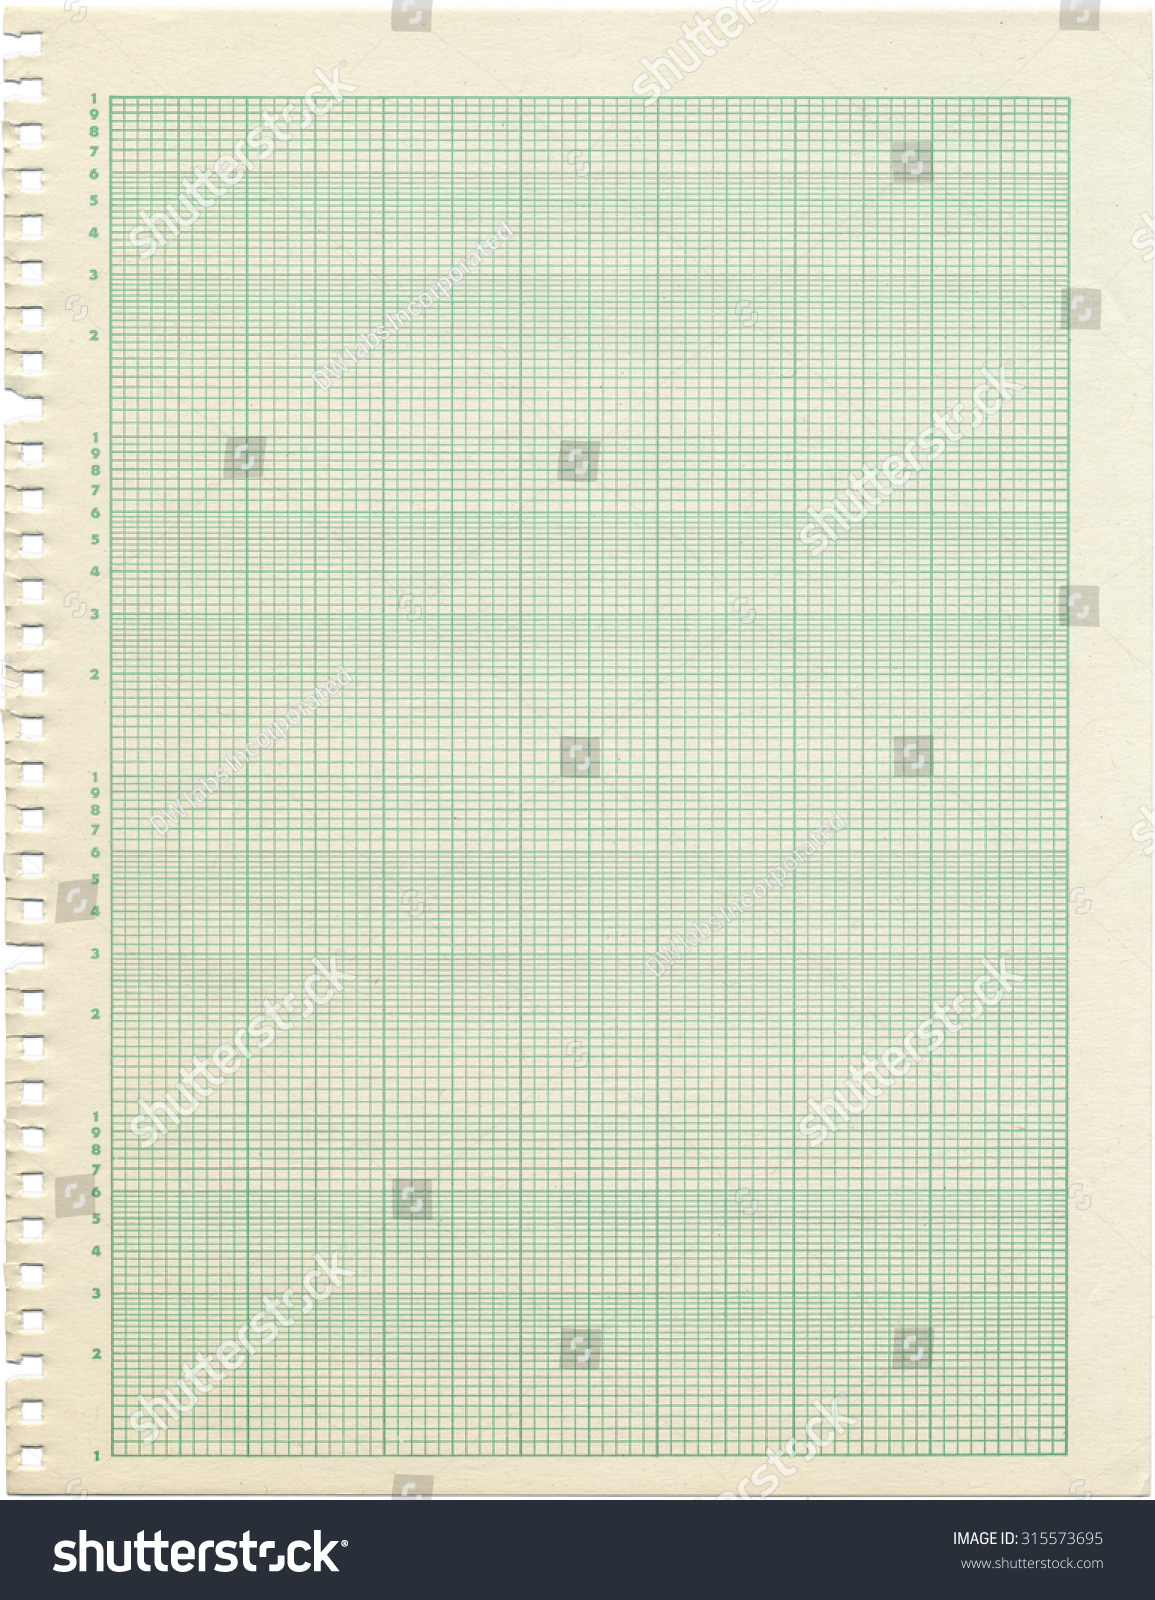 An Old Sheet Of Semi Log Graph Paper. Shows Wear And Discoloration.